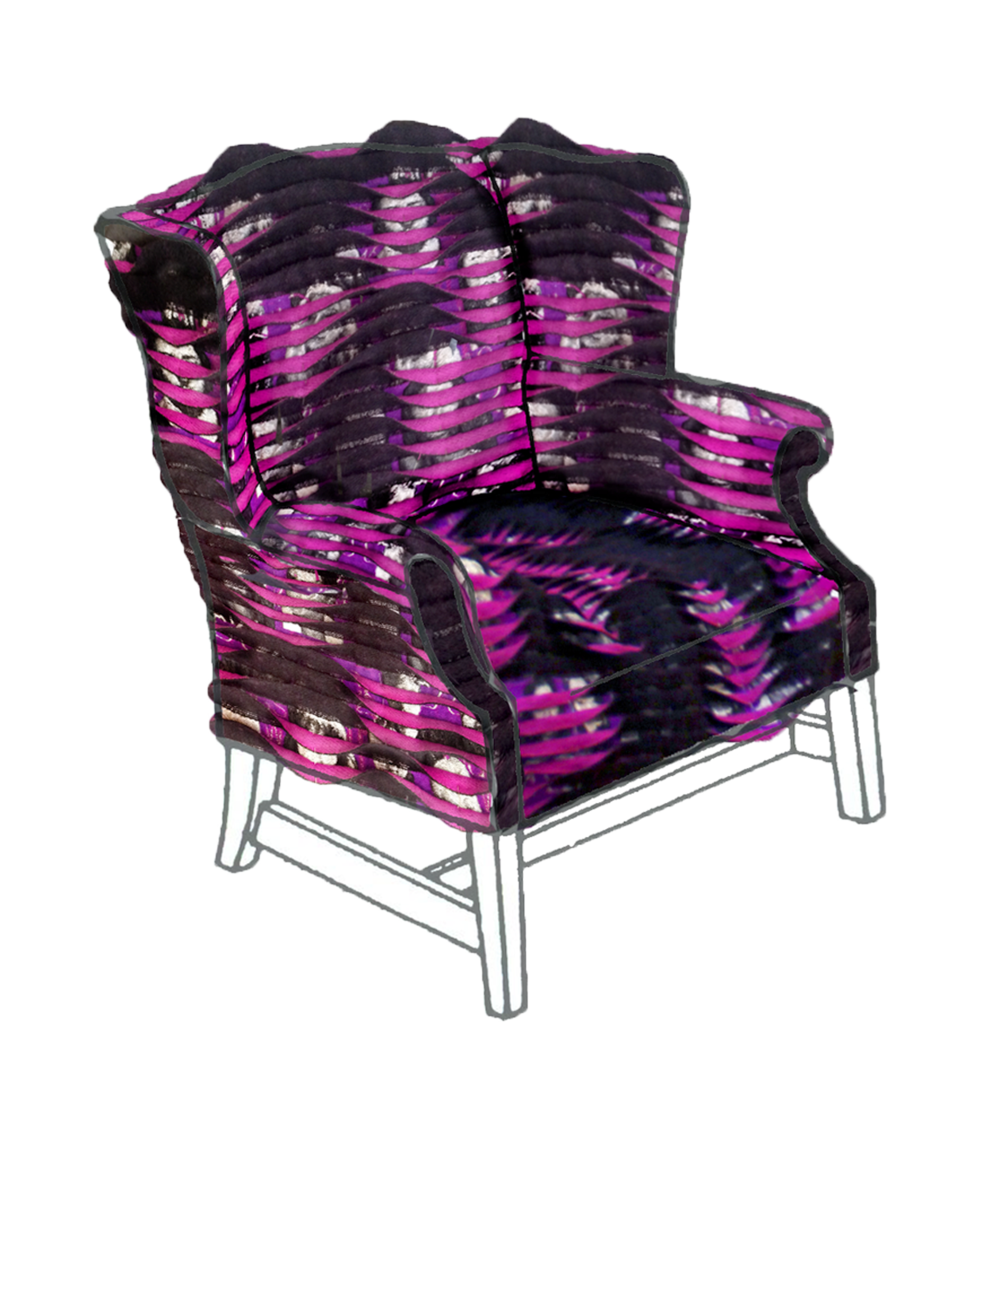 wingchair_transparent.png